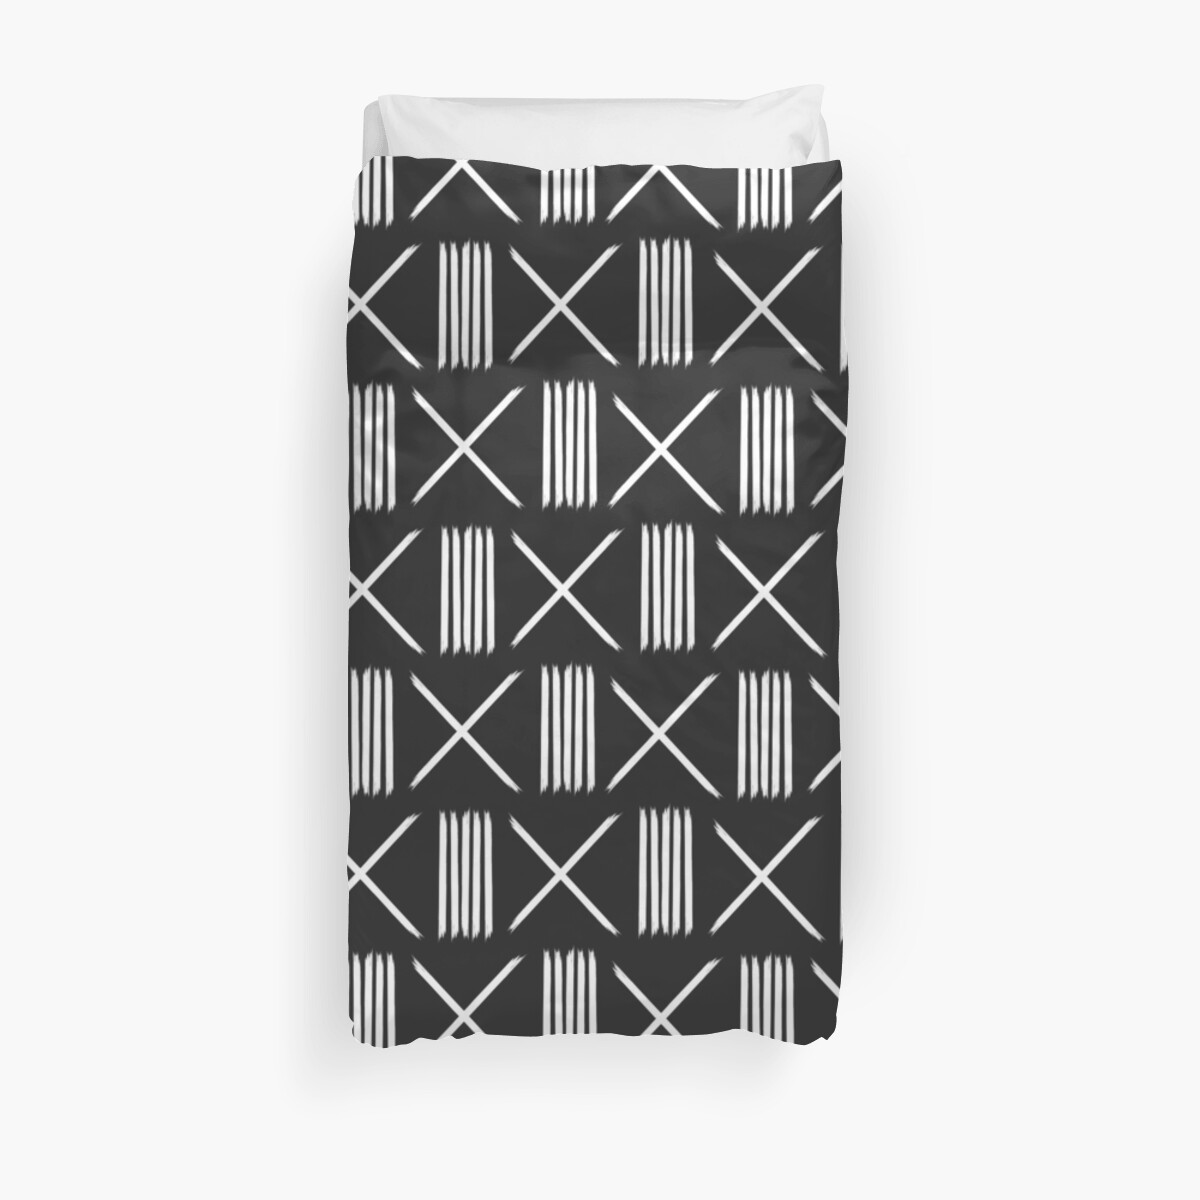 Mudcloth xs and lines black by hellcom